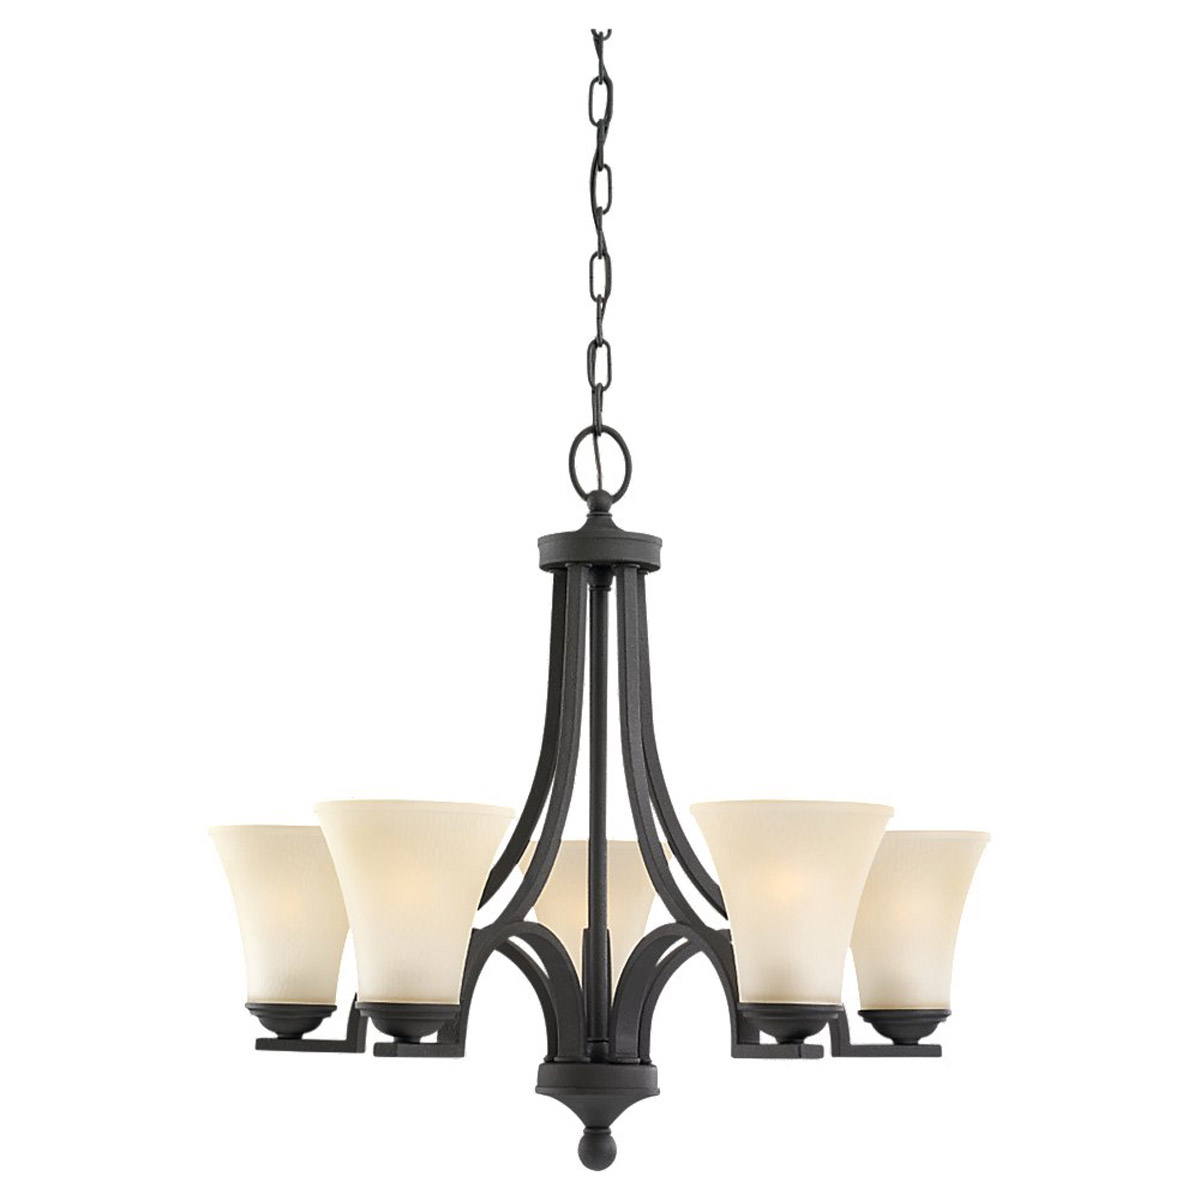 Sea Gull 31376BLE-839 Somerton 5 Light 25 inch Blacksmith Chandelier Single-Tier Ceiling Light in Cafe Tint Glass, Fluorescent photo